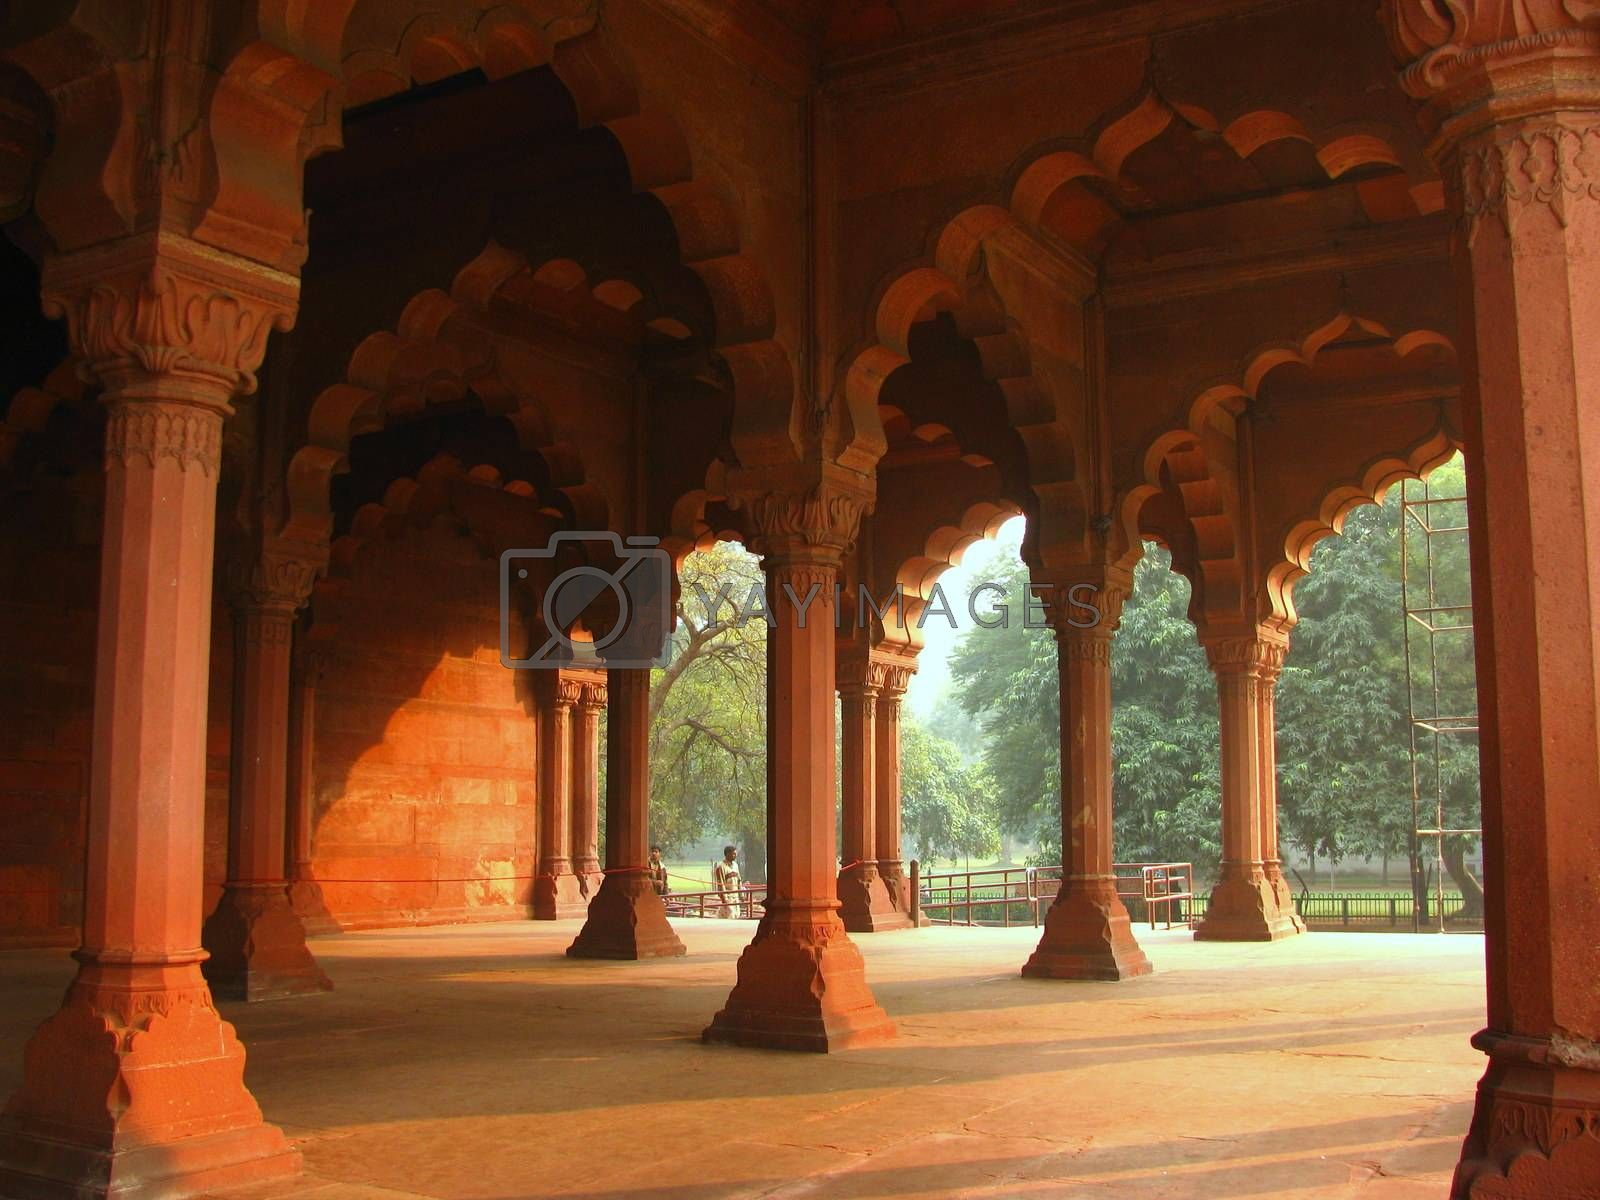 Hallway with pillers in Diwan-e-aam in Lal Qila ( Red Fort) in Delhi, India. On Independence Day every year Prime Minister of India hoists the National Flag from the Red Fort.